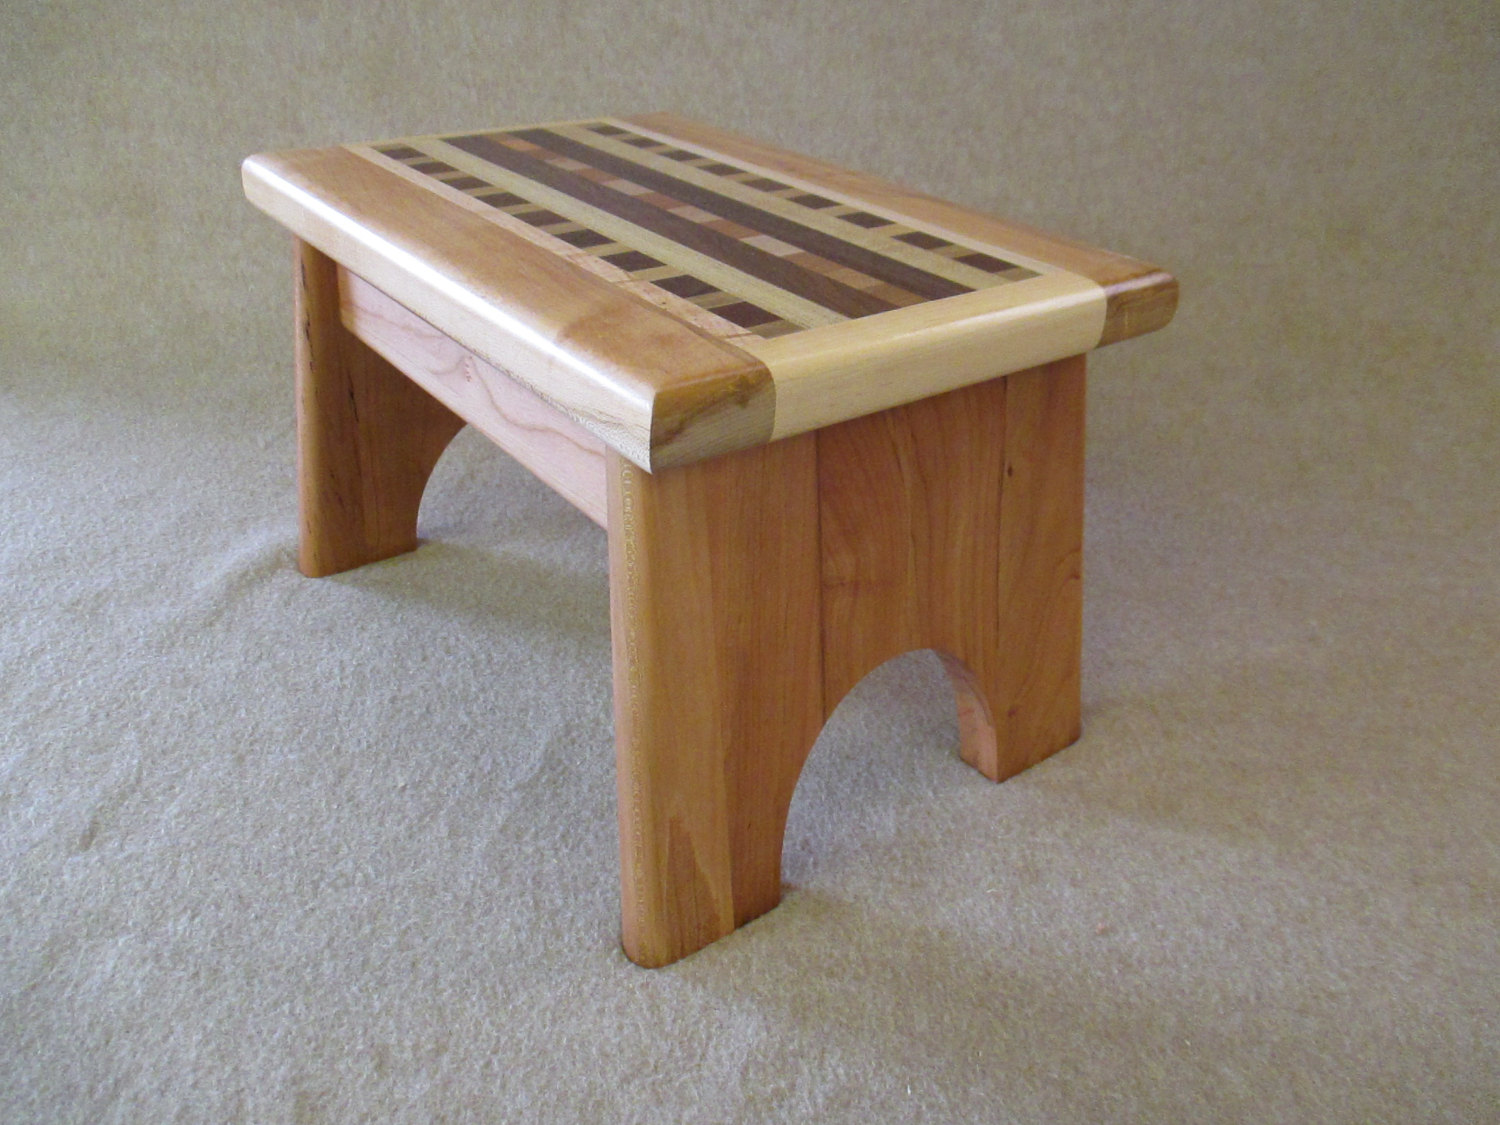 object of royalty image photography stool wooden stock step free